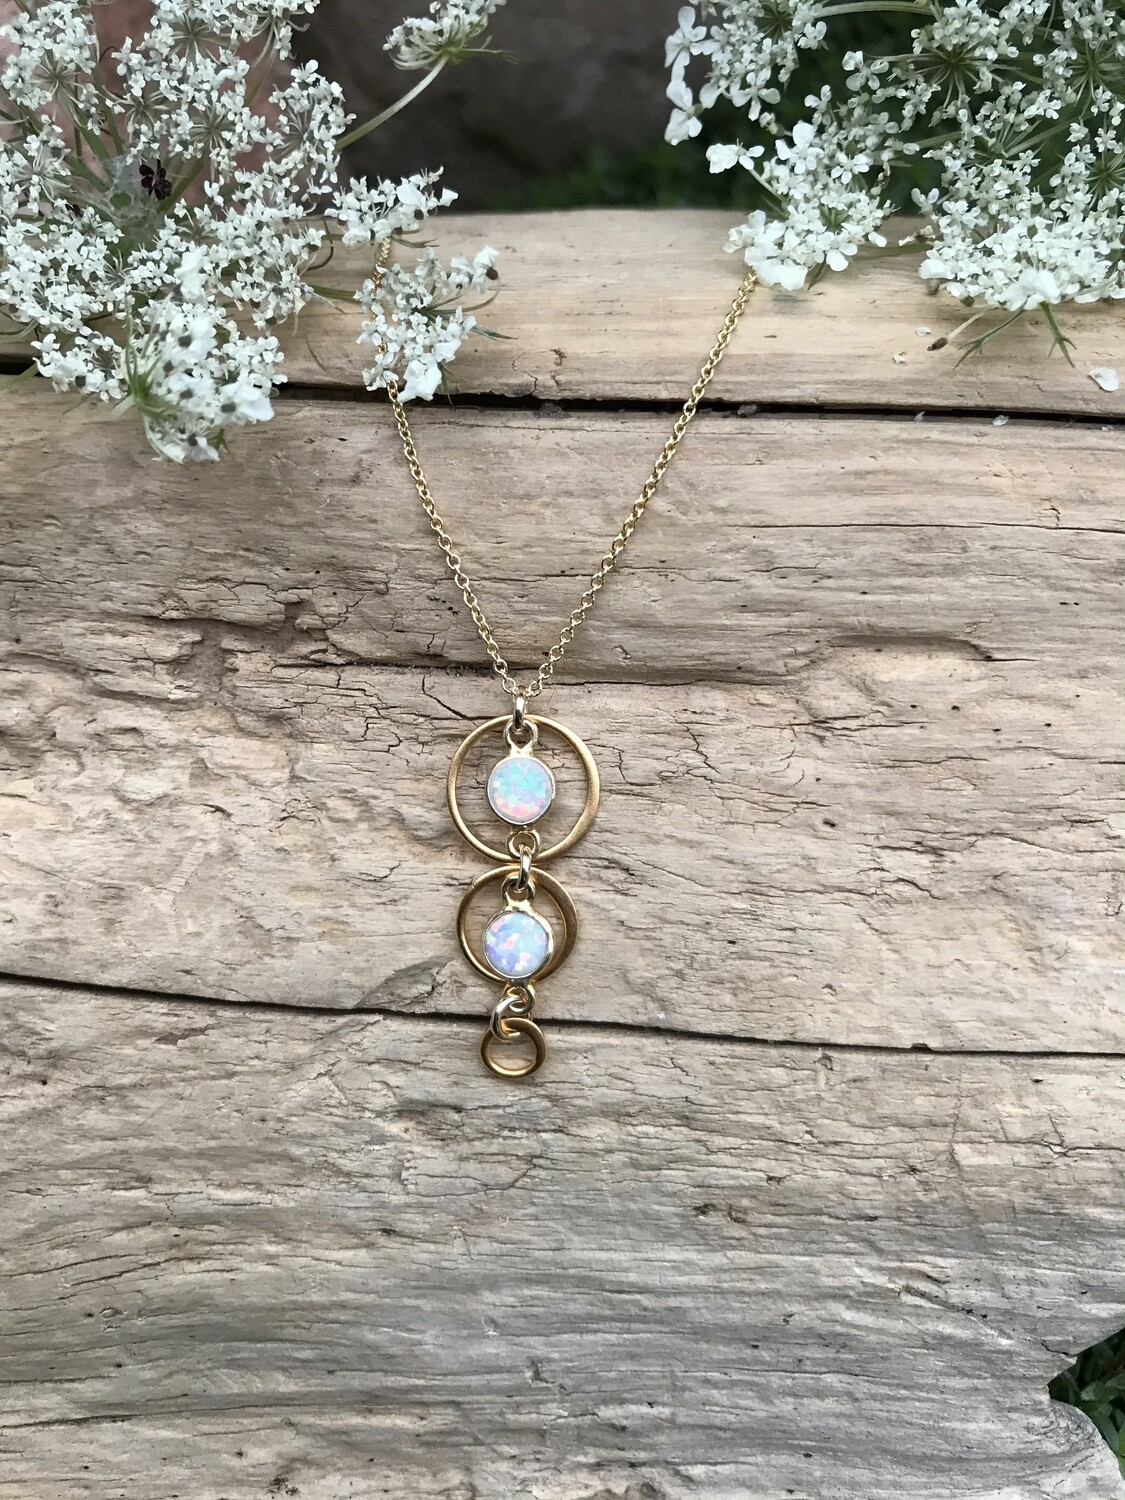 Opalescent Aphrodite Circles Necklace - GDFDLKN9